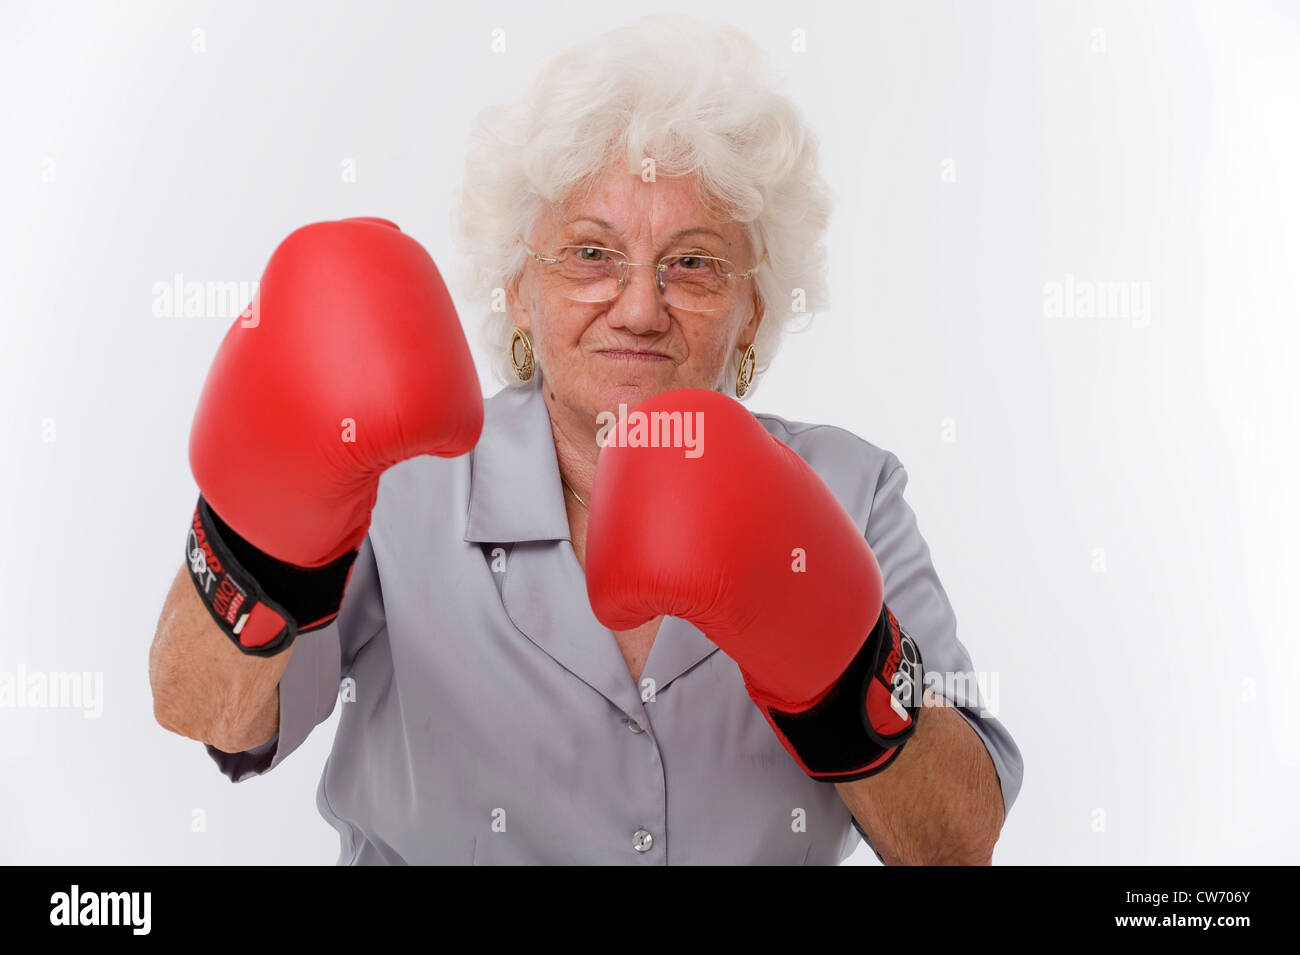 old woman wih boxing gloves - Stock Image